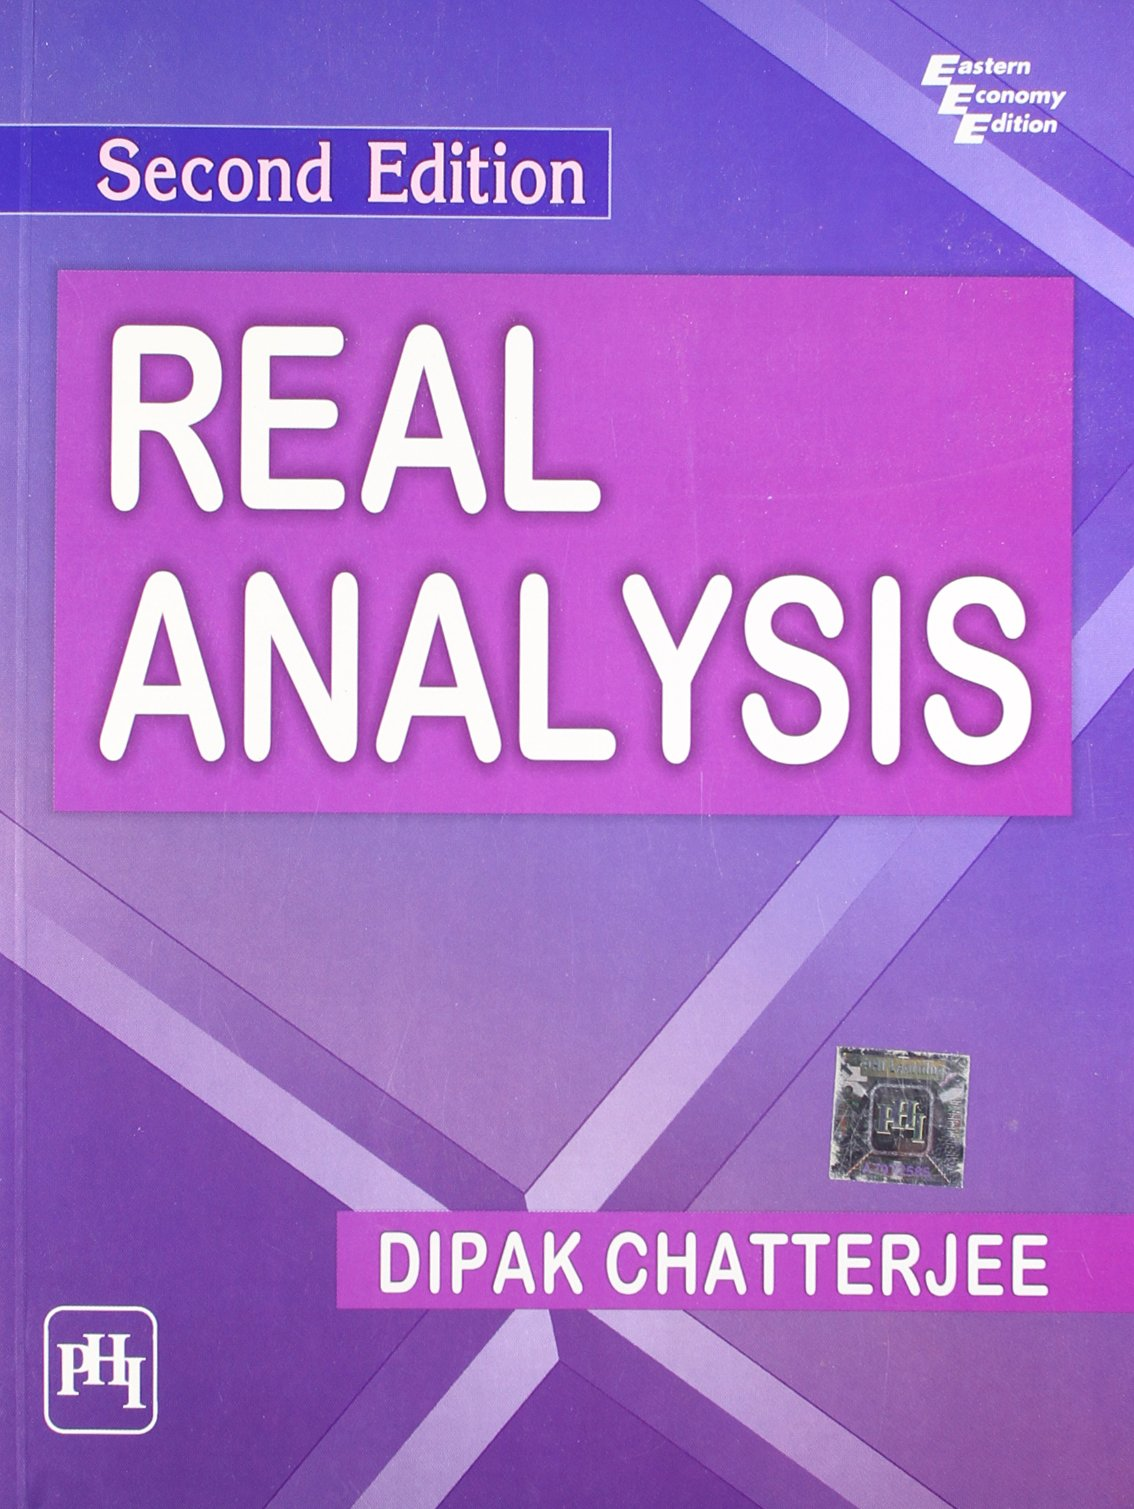 real analysis book by dipak chatterjee